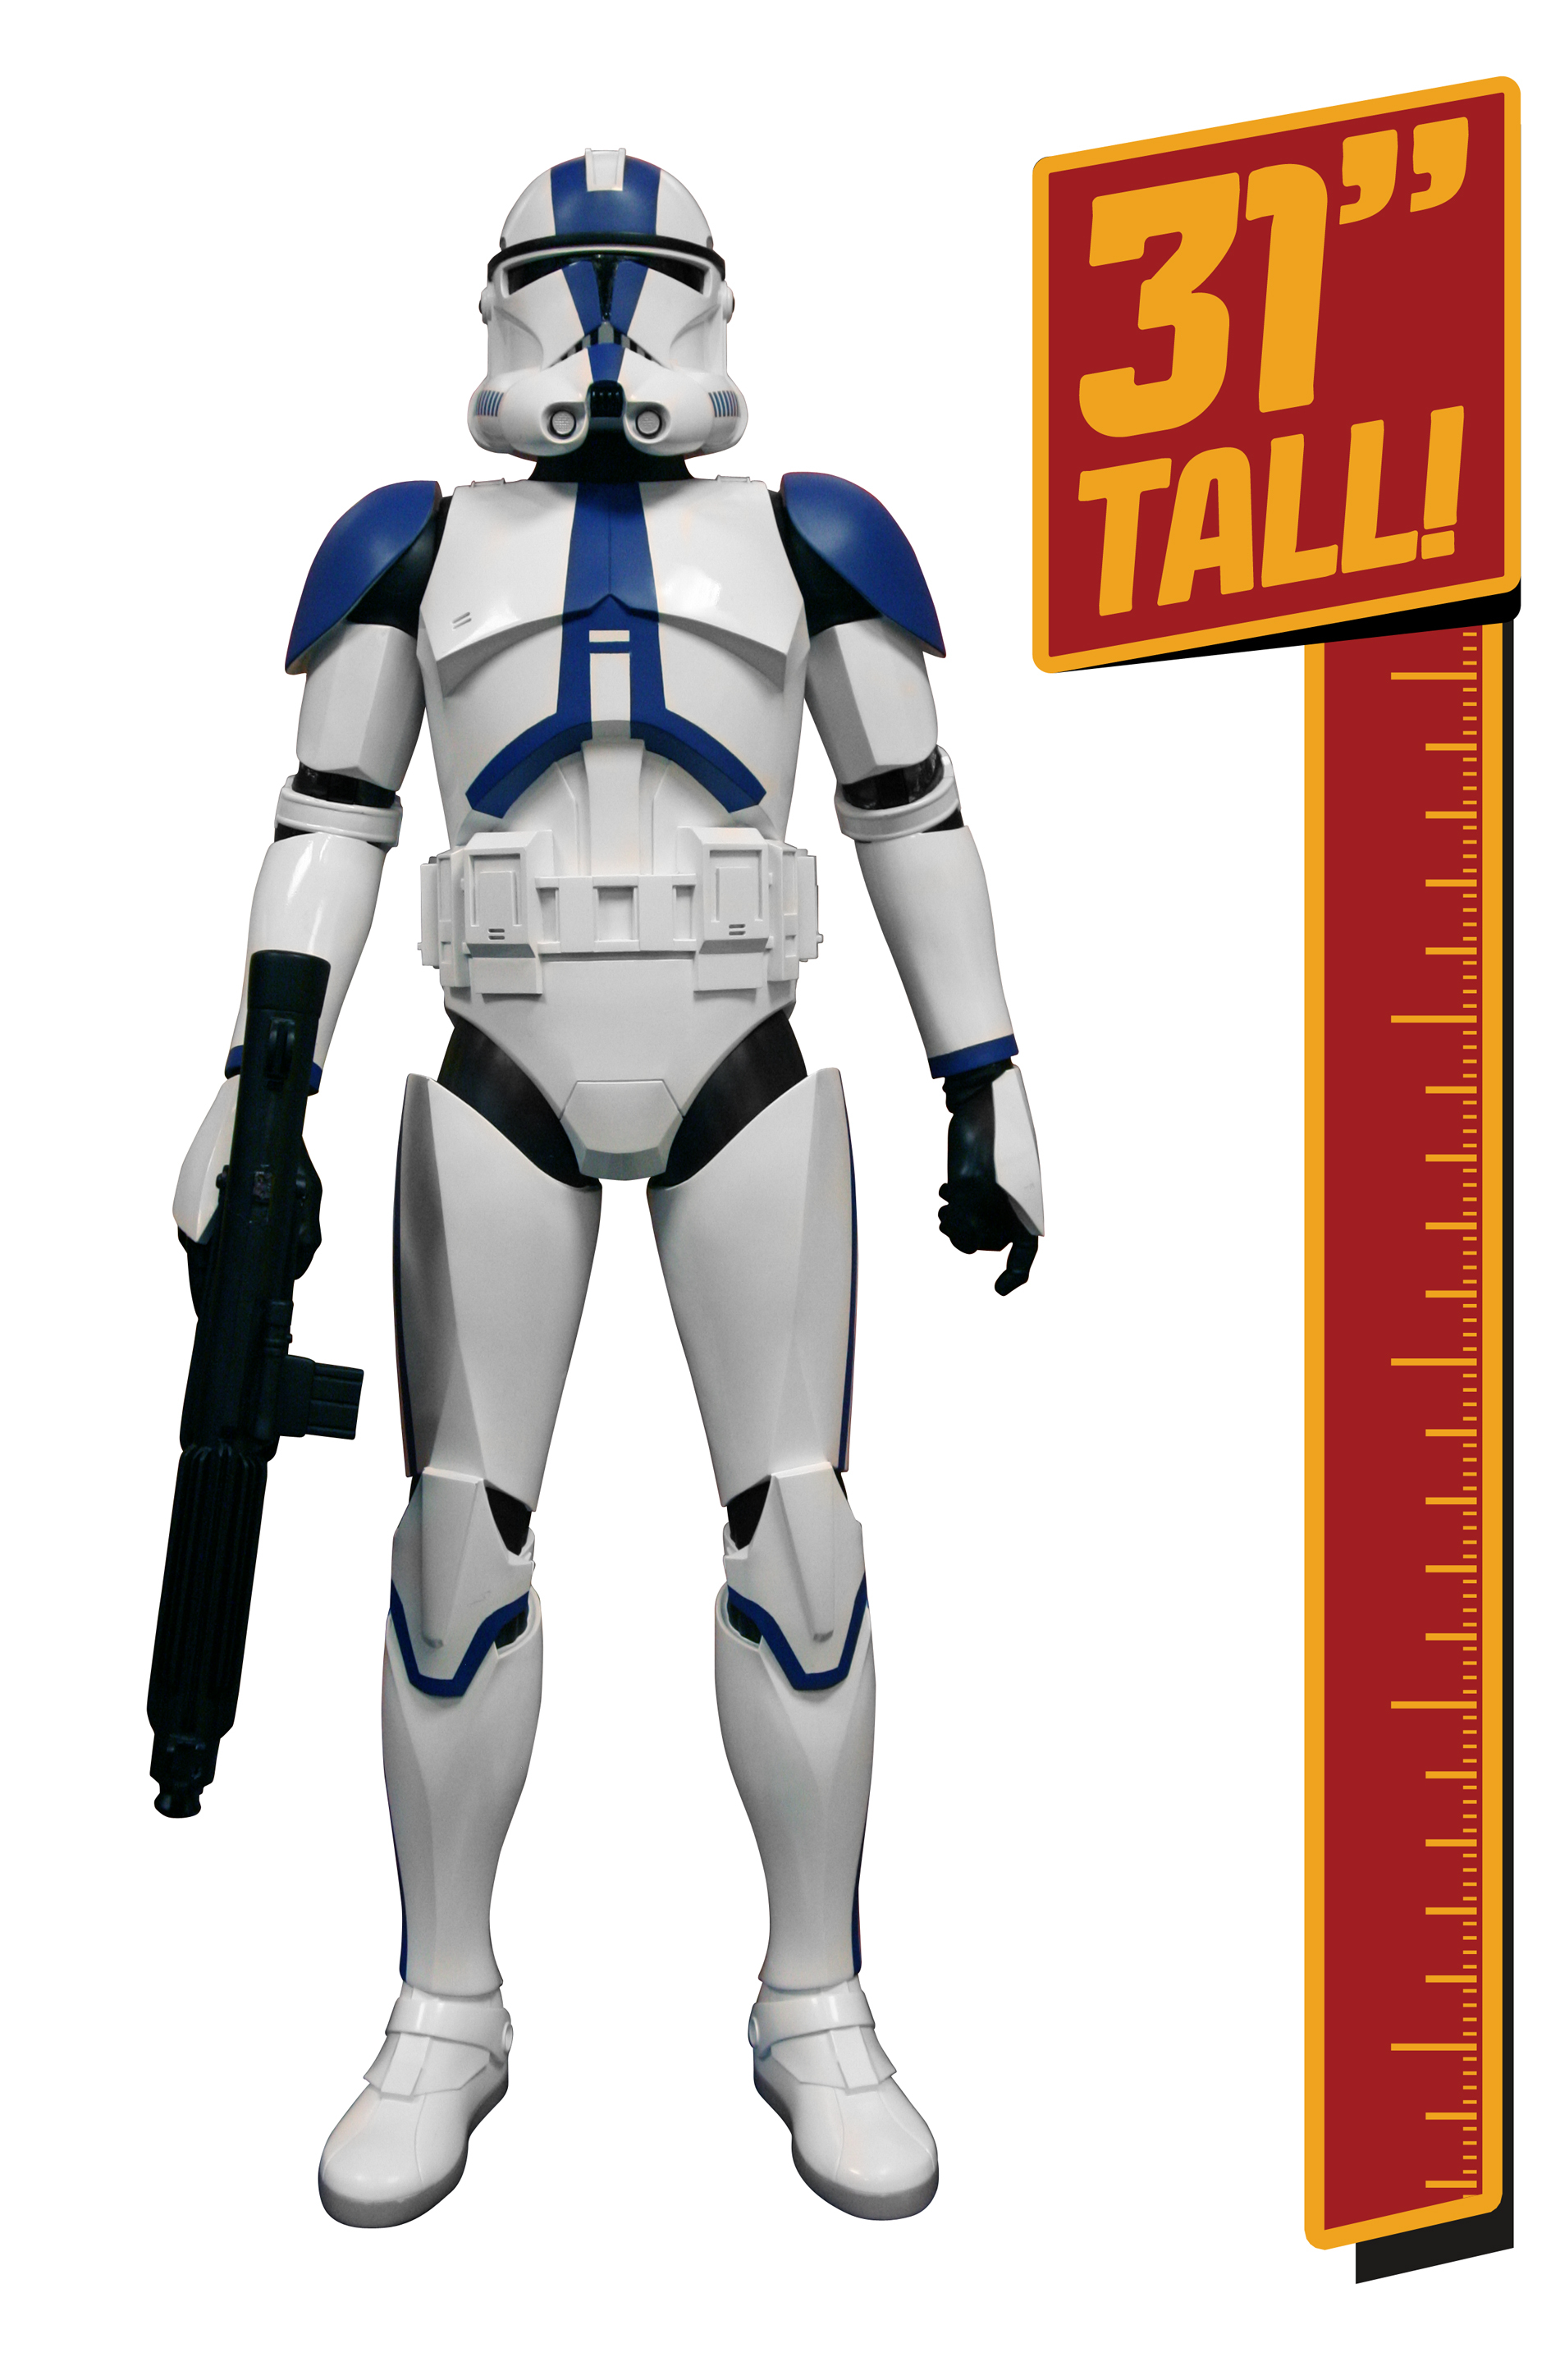 Jakks Pacific Celebrates Star Wars Day With Rights For Revenge Of The Sith 31 Giant Clone Trooper And 31 Giant Shock Trooper Figures Business Wire